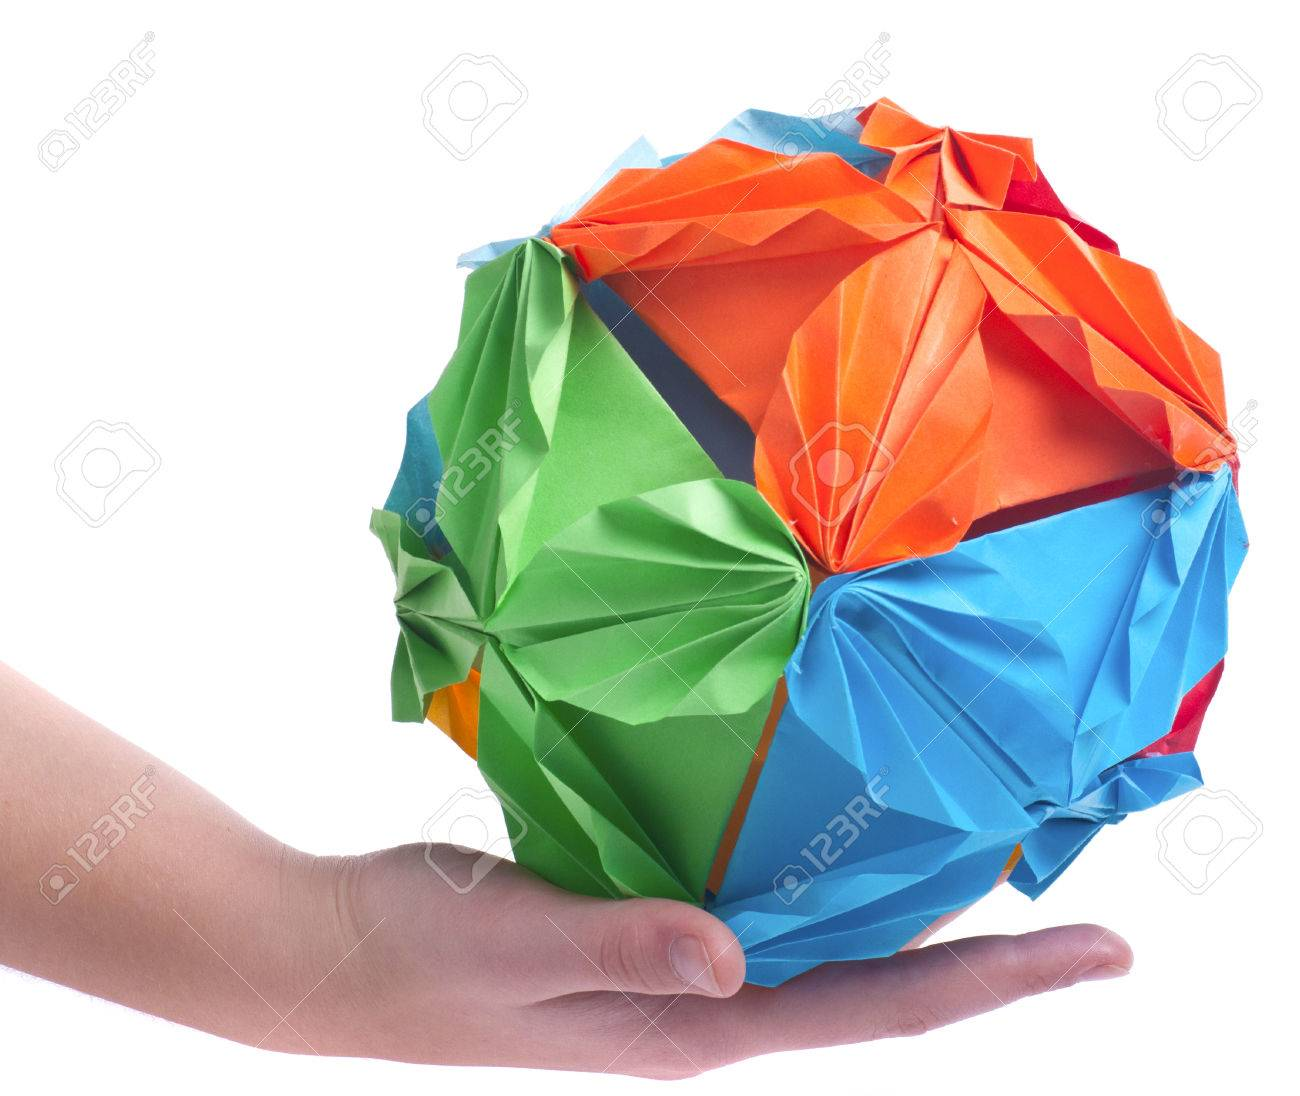 How to Make Poke Ball Origami 3D -fatafeltproject - YouTube | 1096x1300